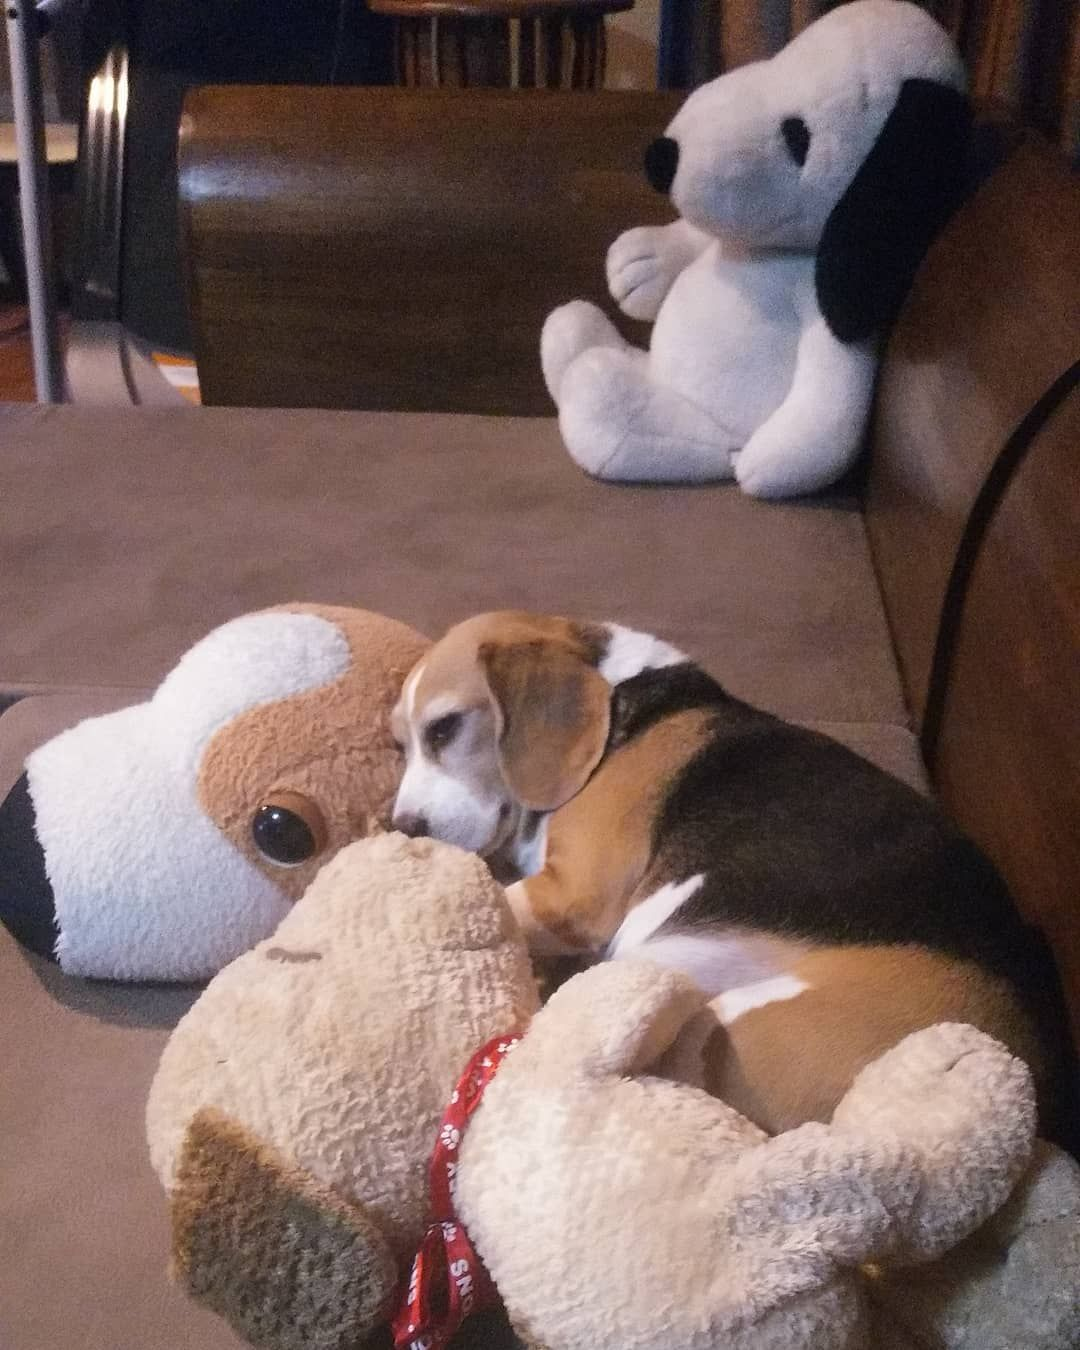 Amazing Snoopy Beagle Beagle Adorable Dog - 406e499b296c0c940cb125f35c76b74a  Gallery_80165  .jpg